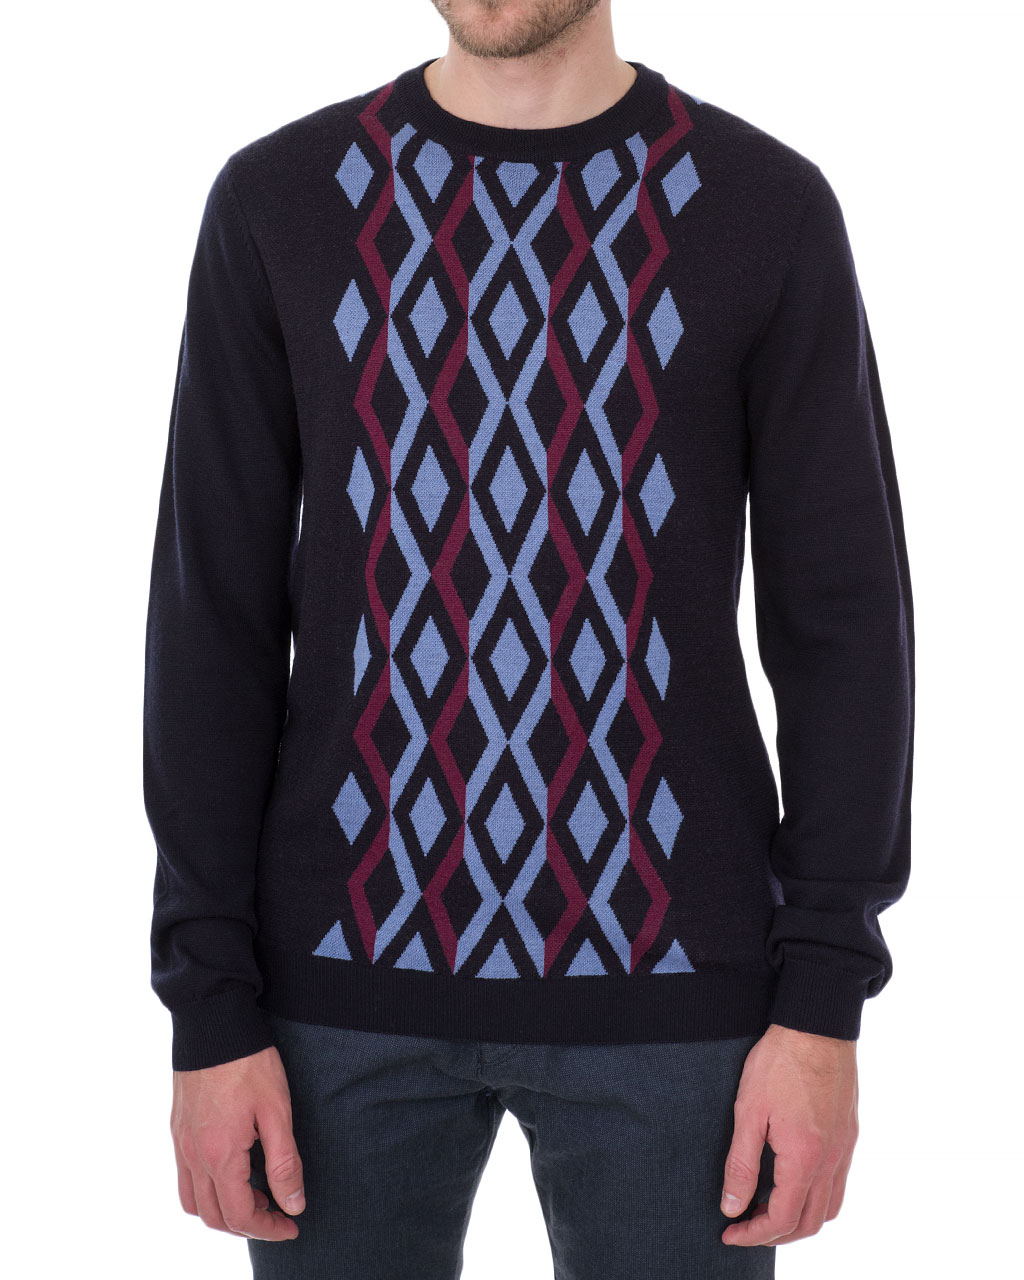 Men's jumper 1855-319/19-20 (1)